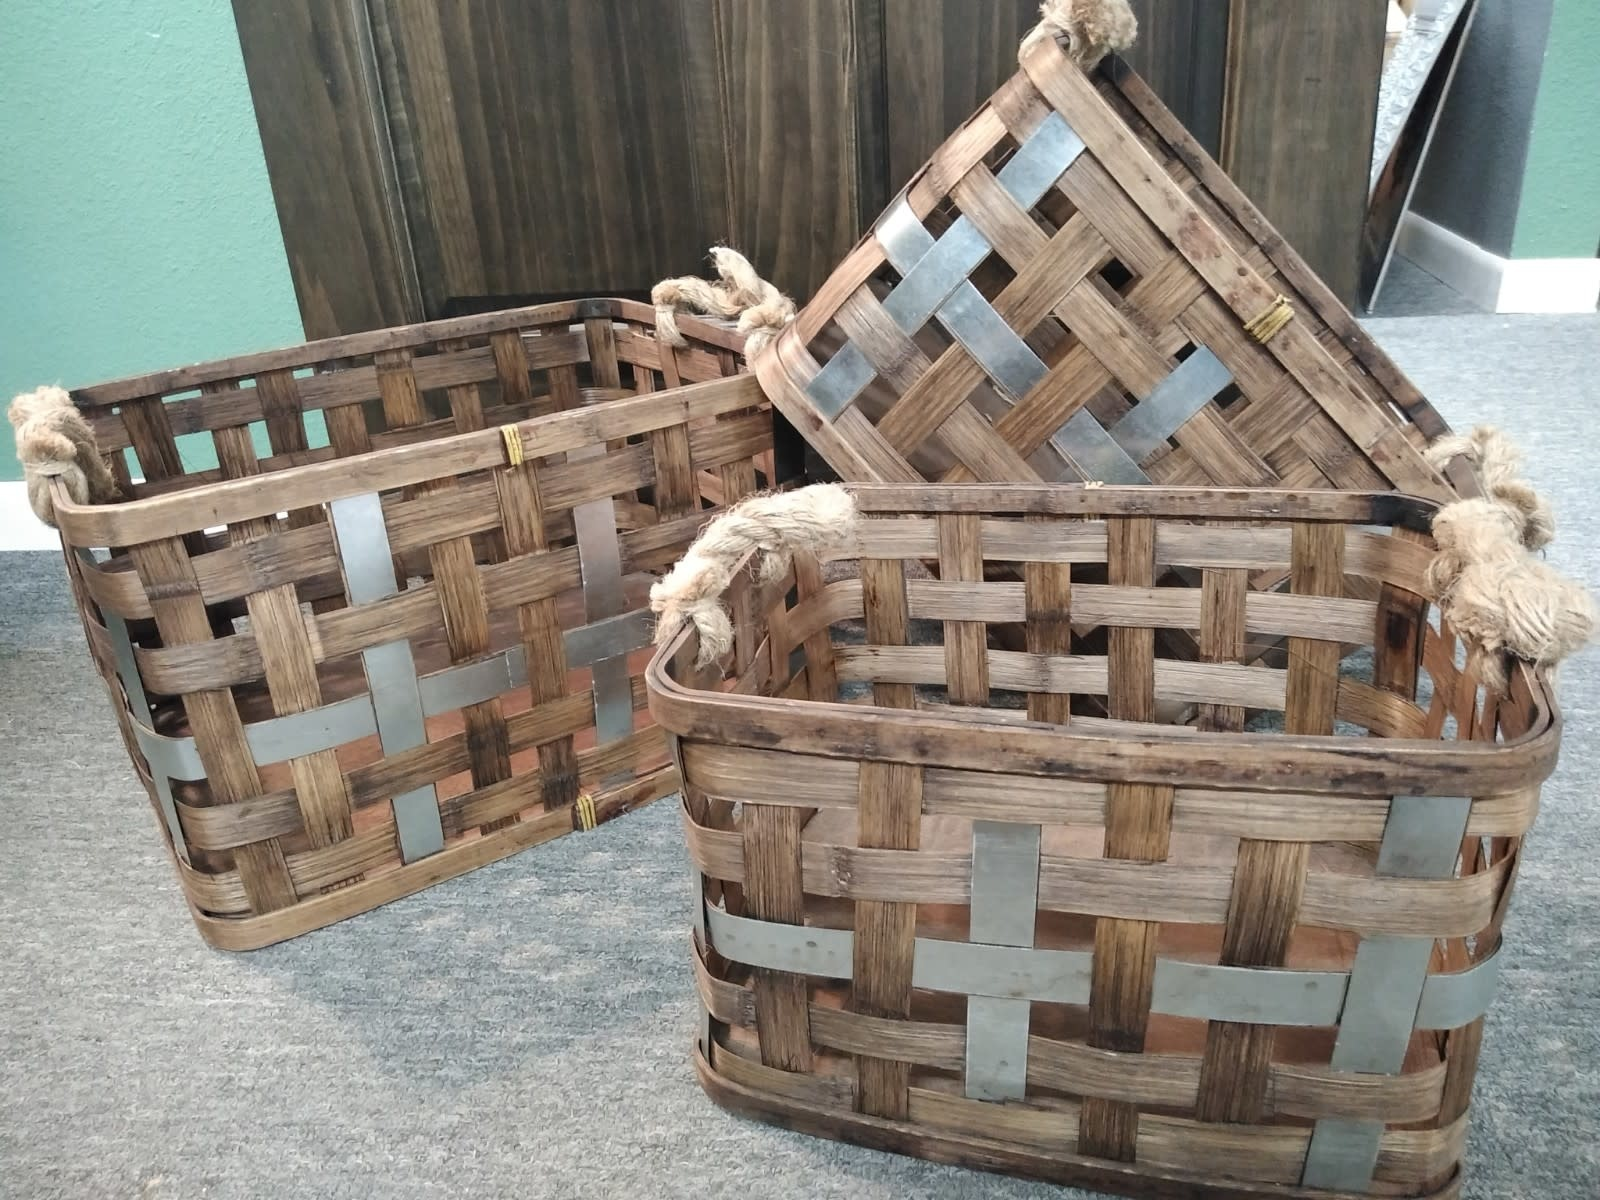 159530 3PC SET WOVEN BASKET